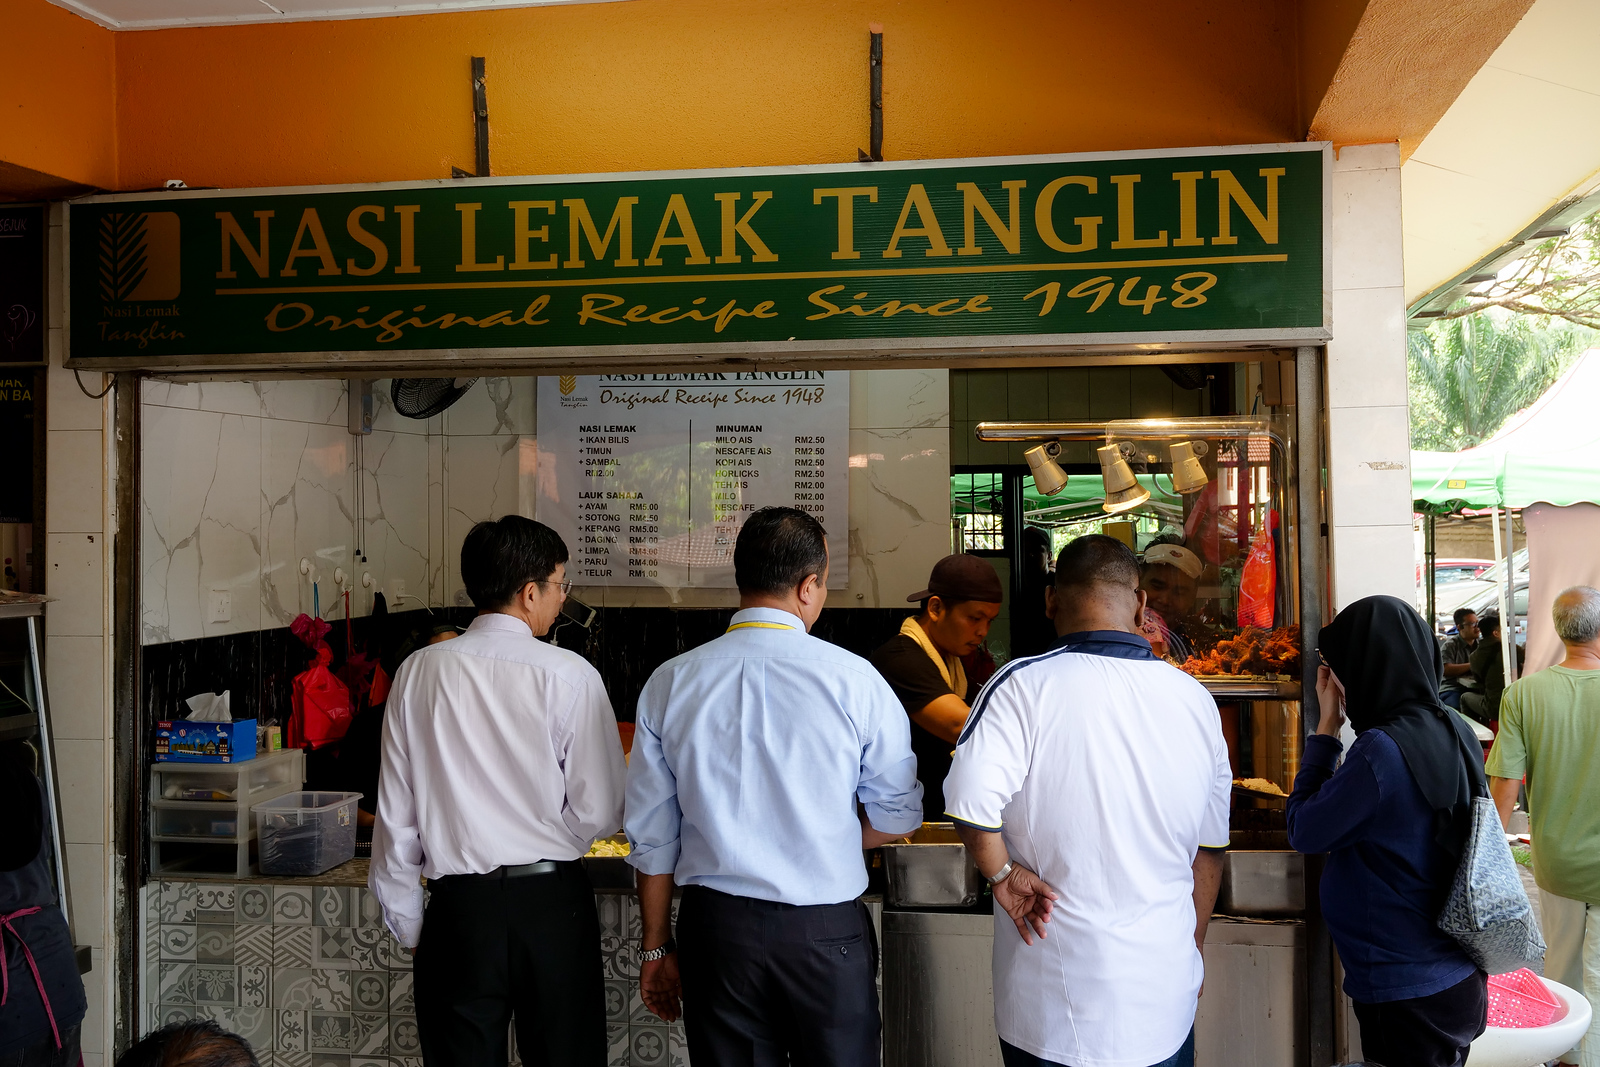 Open since 1948, this restaurant is a famous place to have Nasi Lemak in Kuala Lumpur, Malaysia